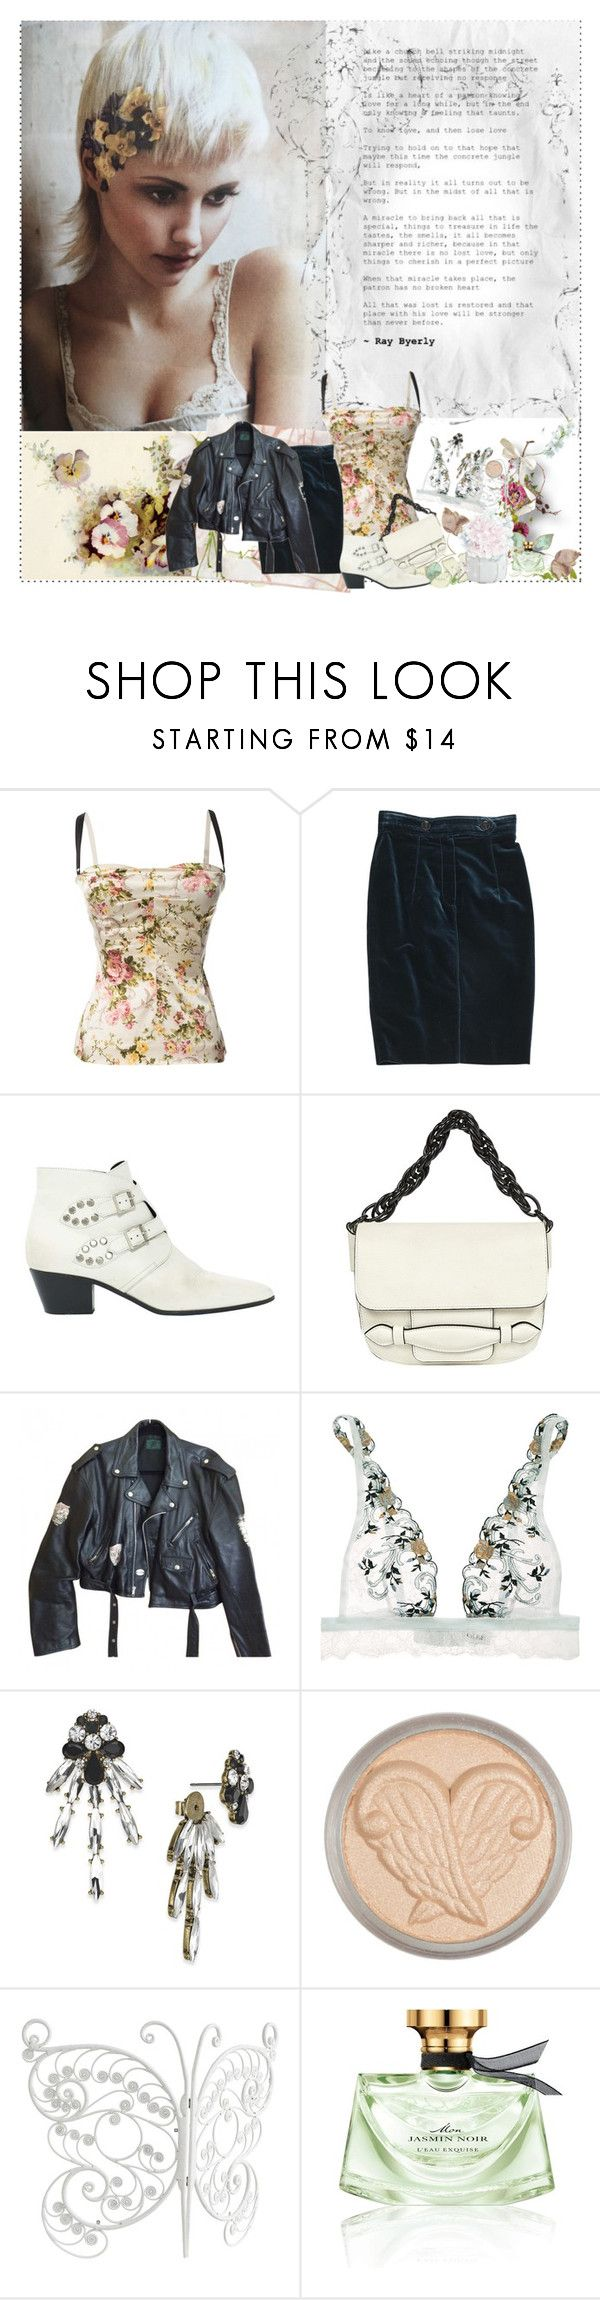 """""""Vintage Days"""" by sue-mes ❤ liked on Polyvore featuring Dolce&Gabbana, Burberry, Yves Saint Laurent, Sonia Rykiel, Jean-Paul Gaultier, La Perla, INC International Concepts, Anna Sui, PBteen and Bulgari"""